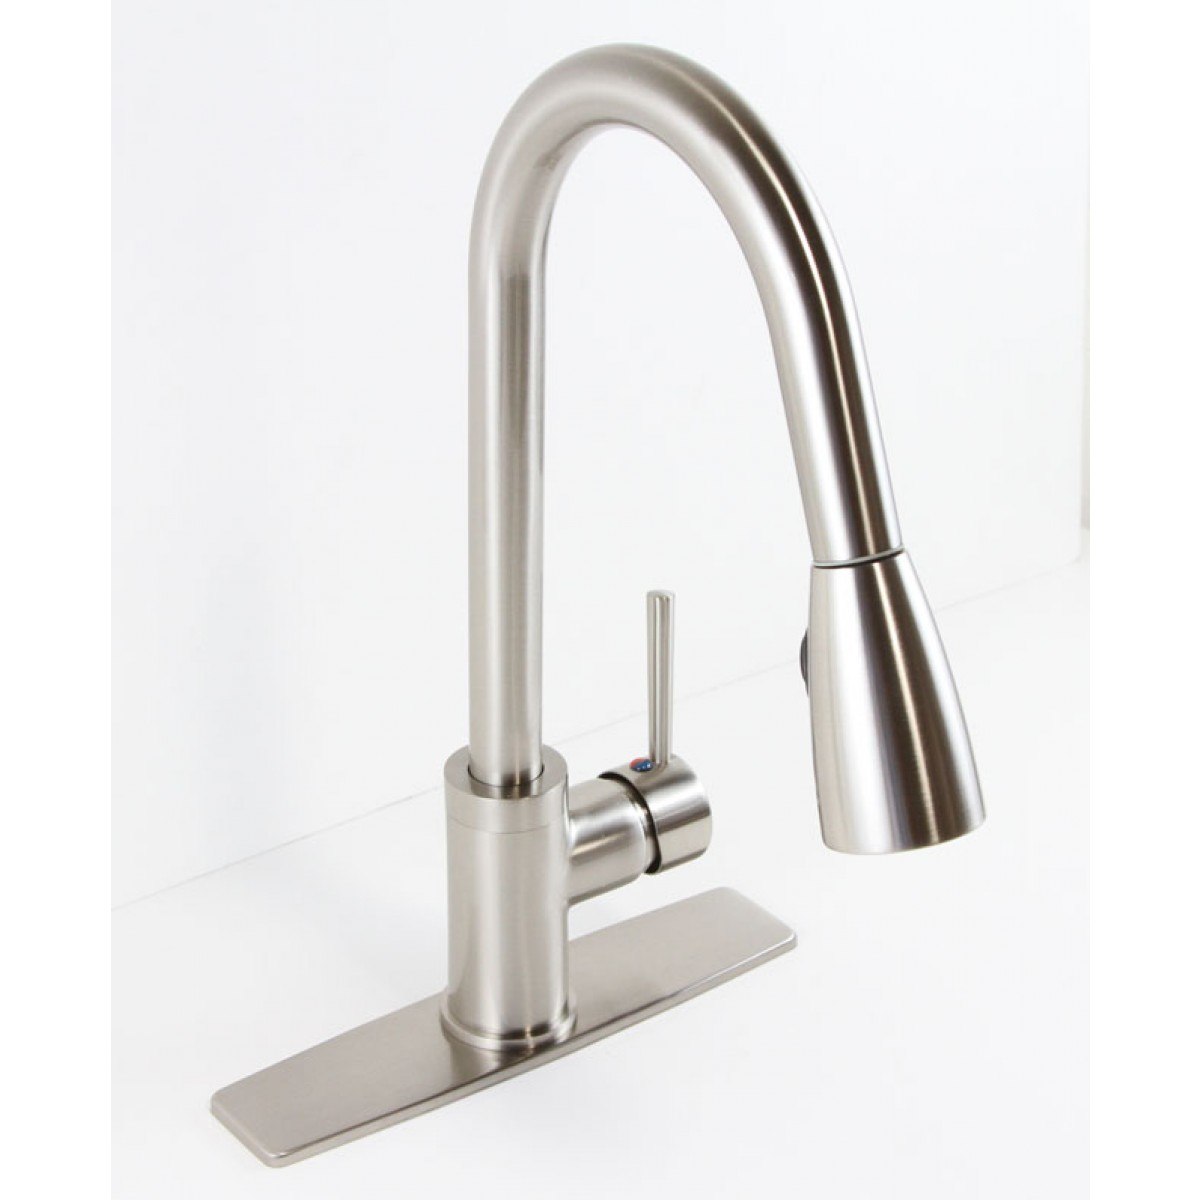 Kitchen Sink Faucet Cover Deck Plate Escutcheon With